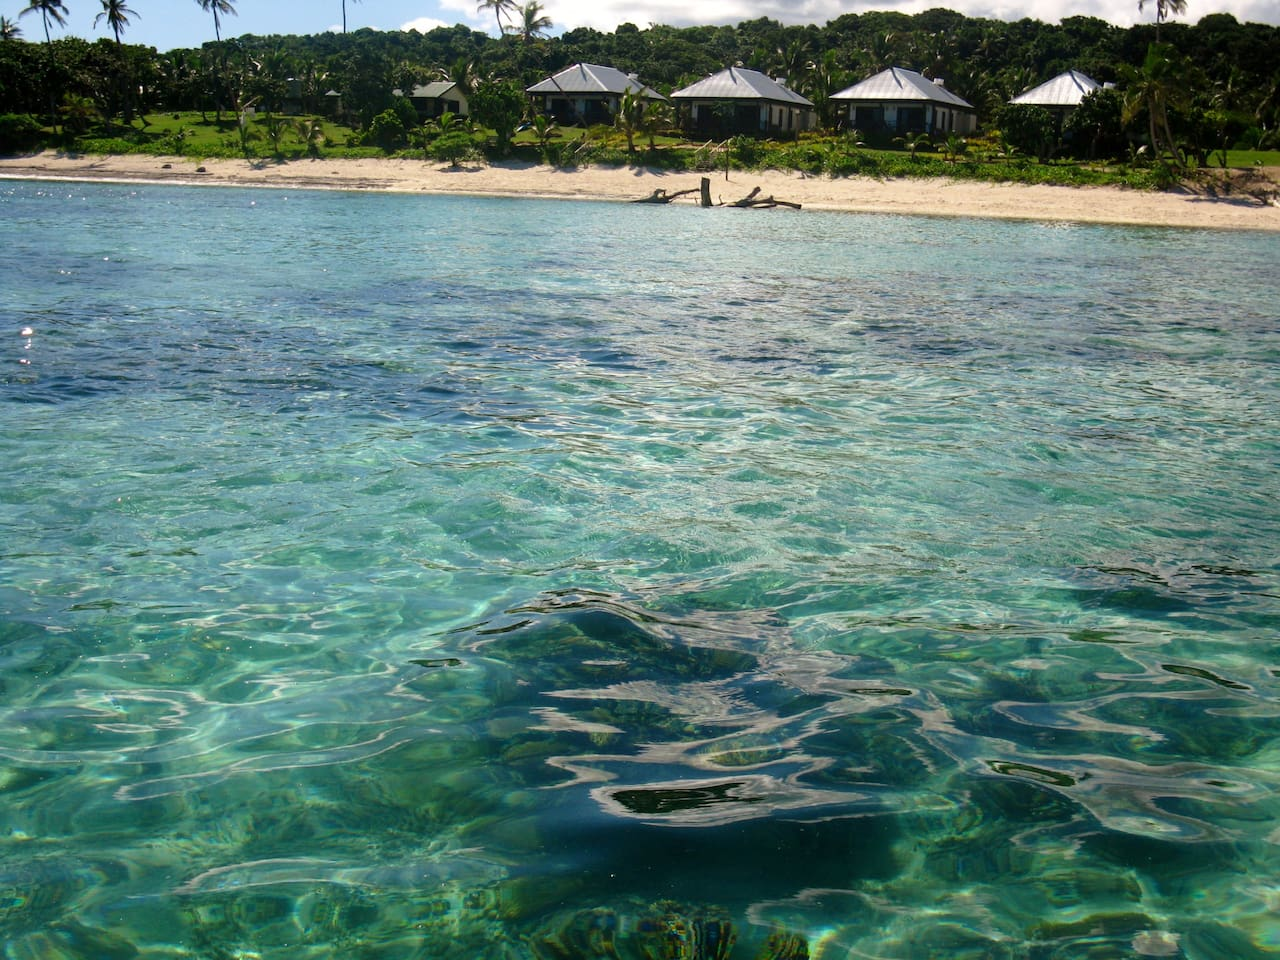 CRYSTAL CLEAR WATERS OF THE NAMUKA LAGOON